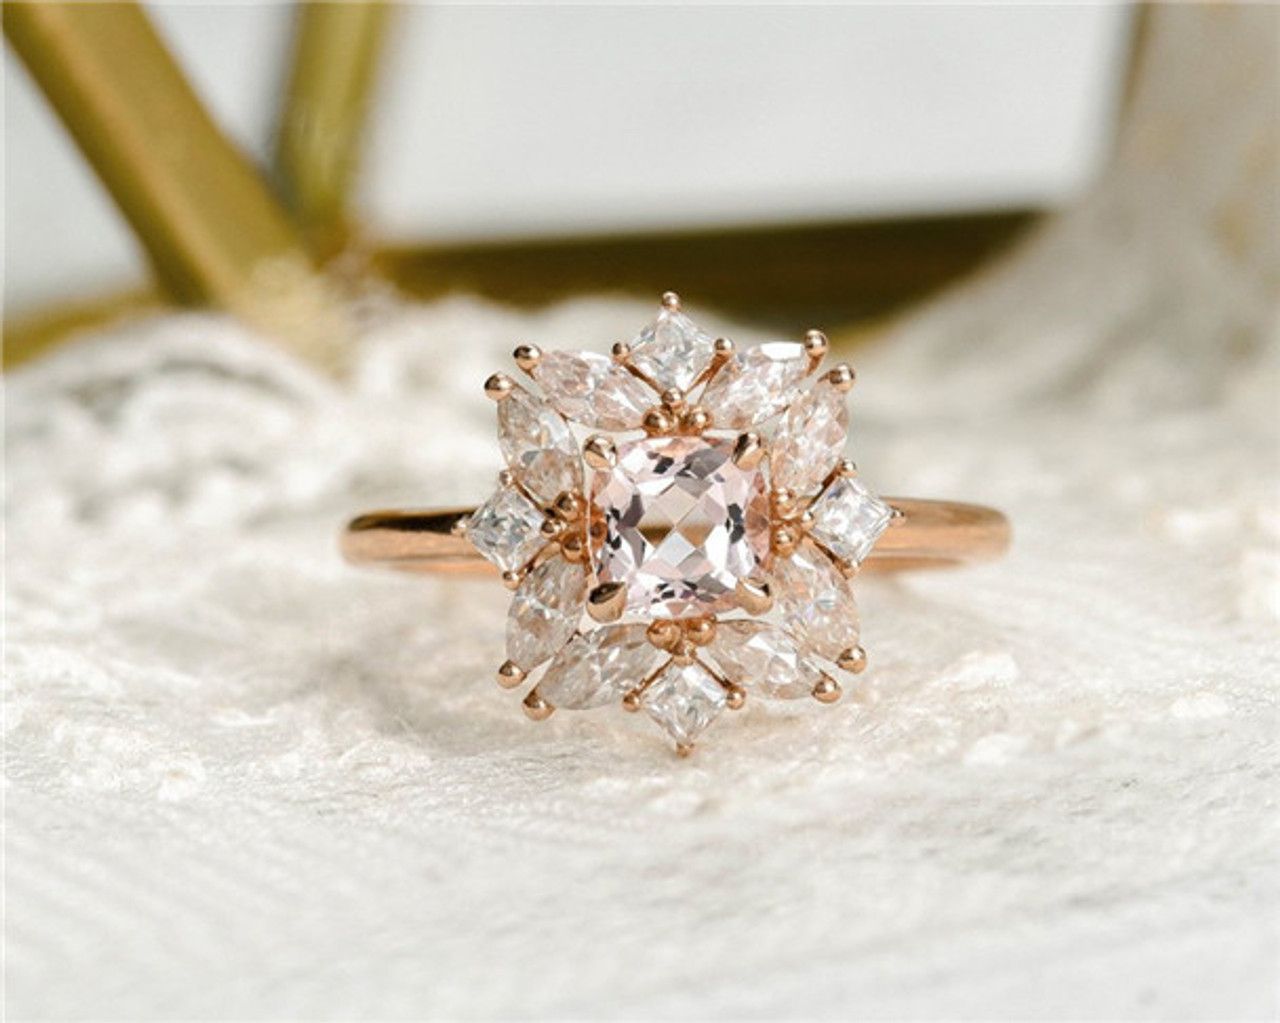 ac7413257b030 Cushion Cut Morganite Engagement Ring Rose Gold Halo Moissanite Promise  Ring Antique Anniversary Gift